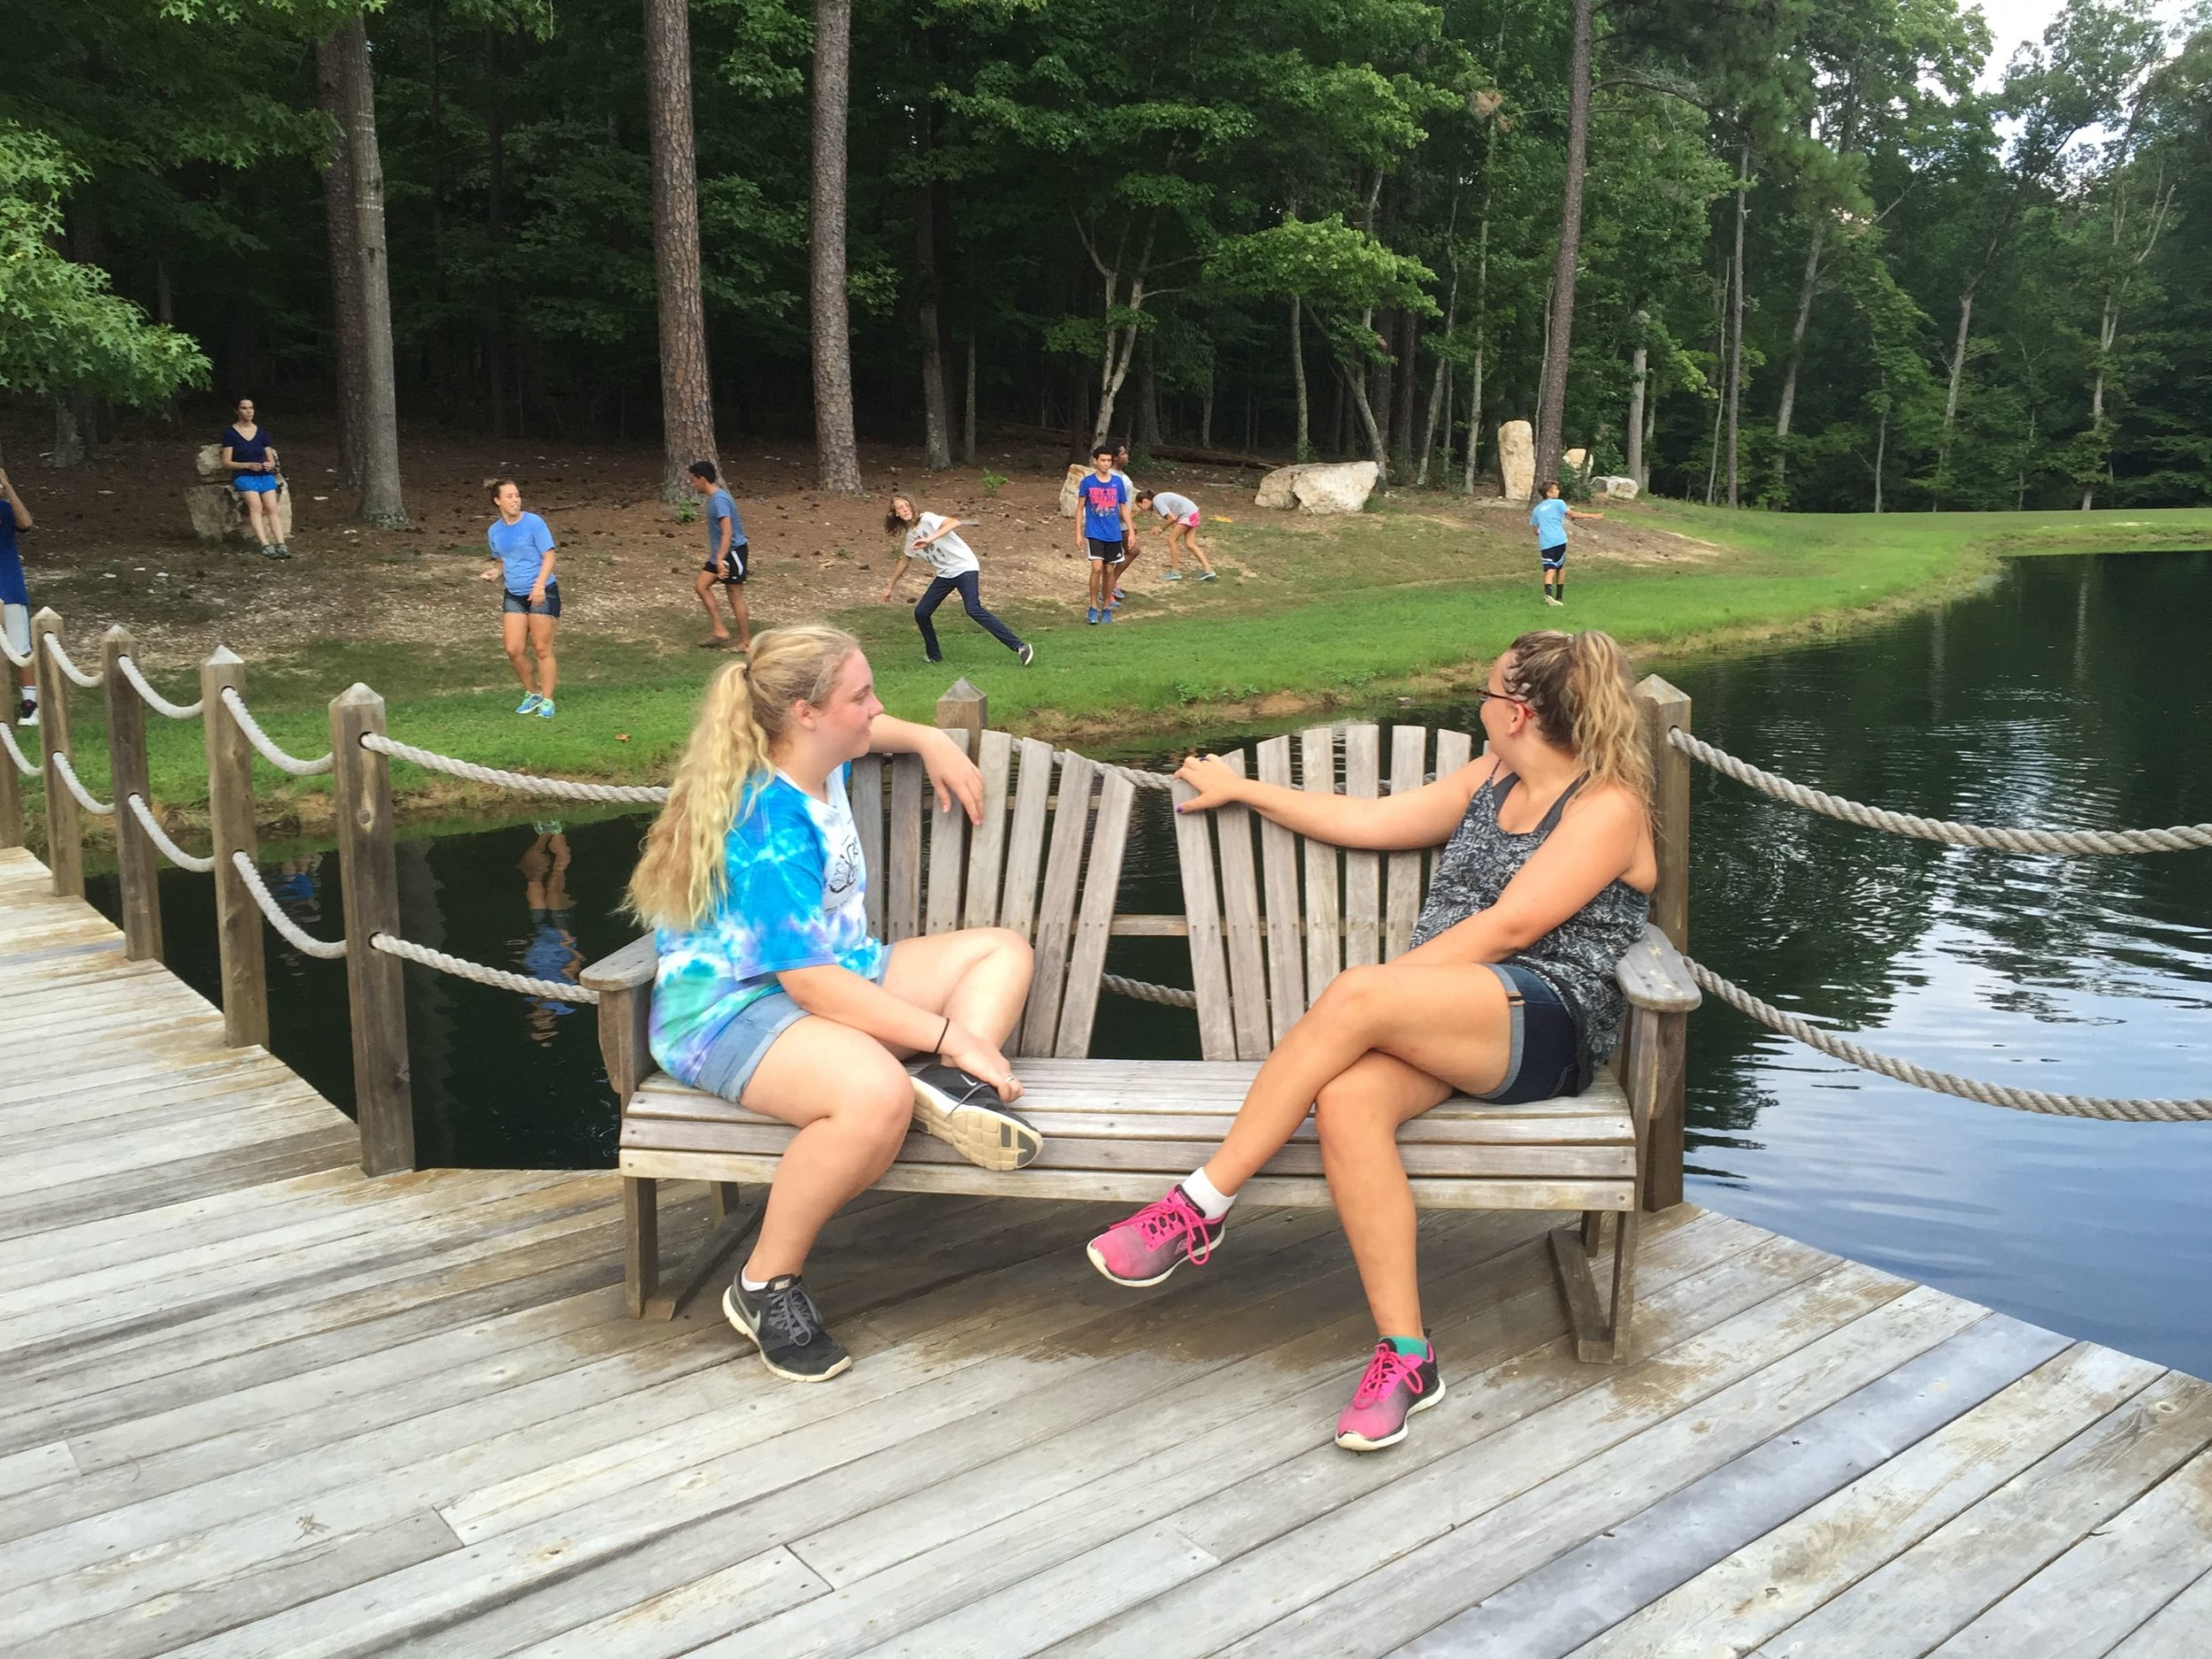 Immersion Island campers develop strong social, leadership and problem-solving skills while at camp.